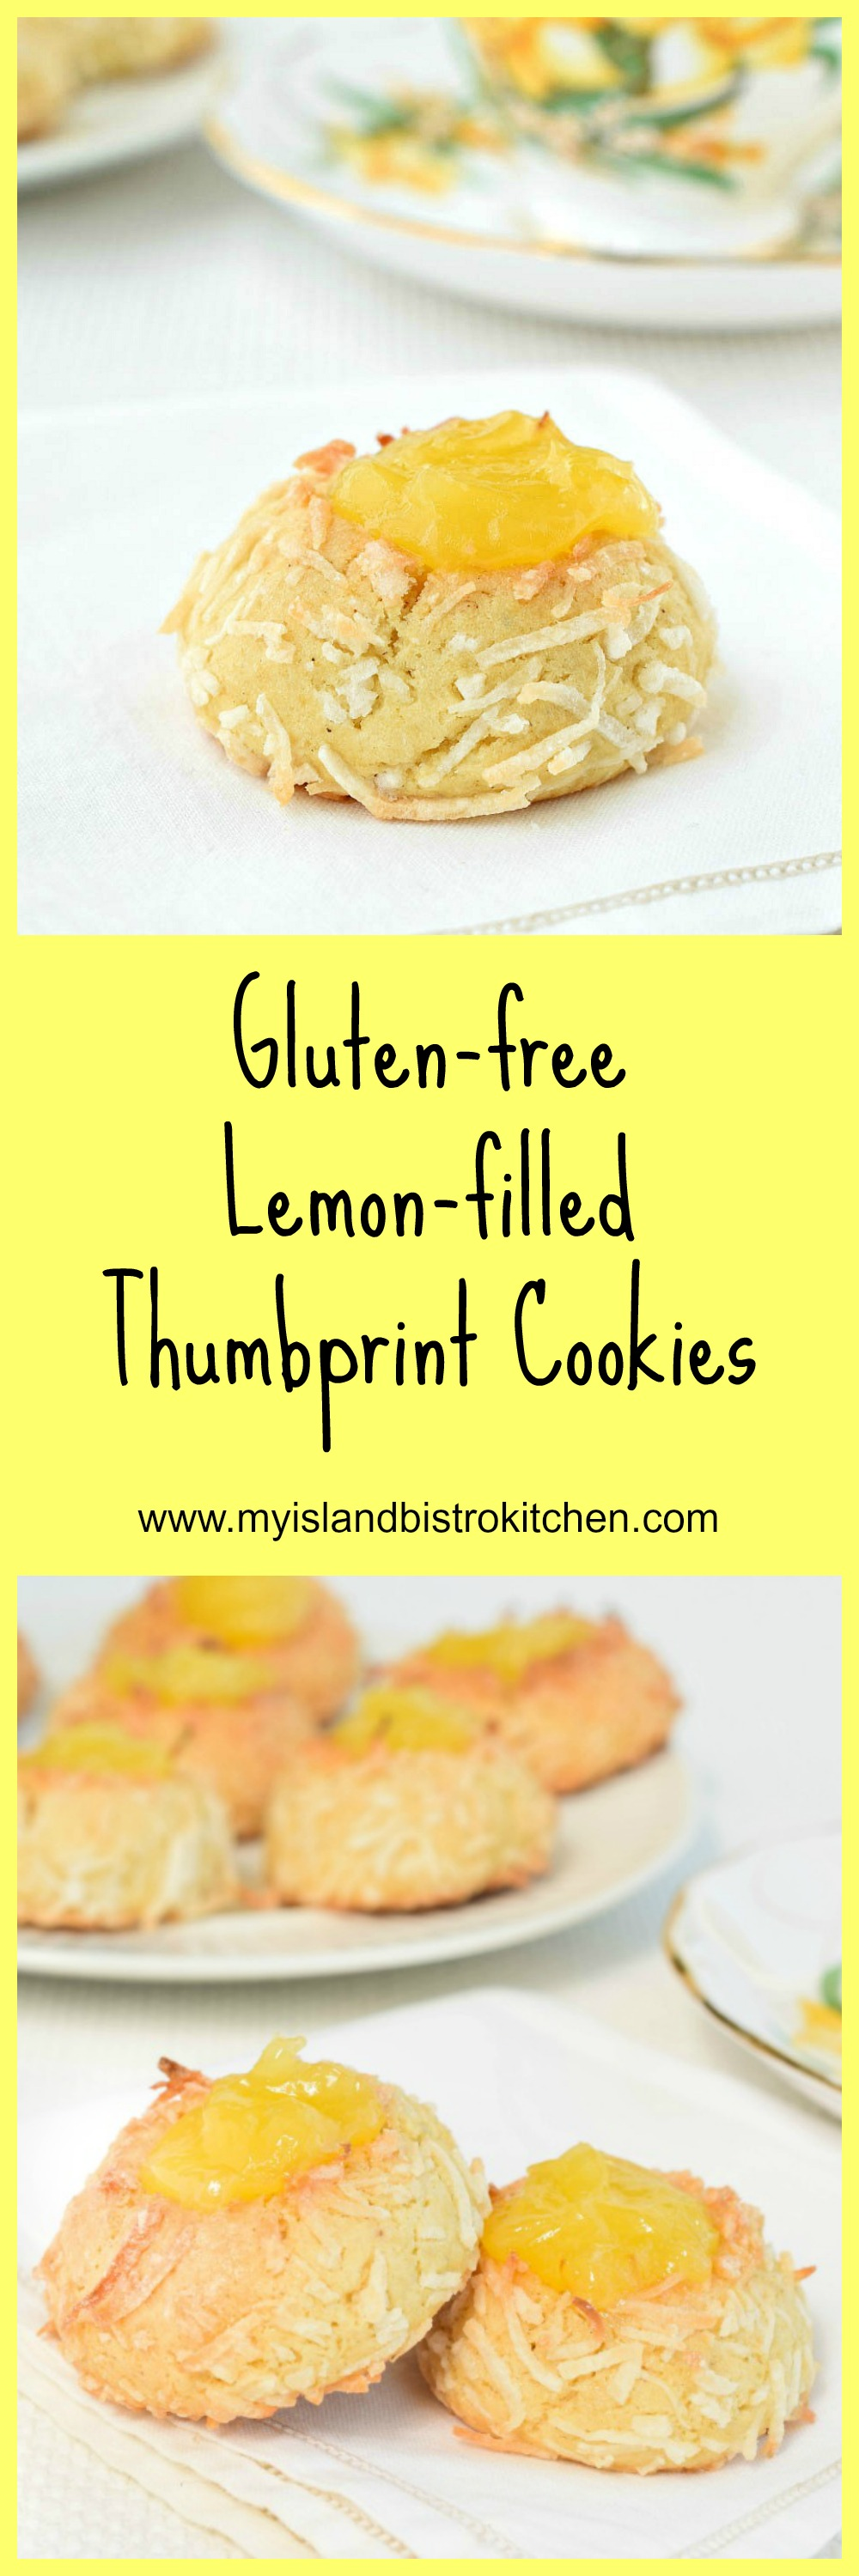 Gluten-free Lemon-filled Thumbprint Cookies